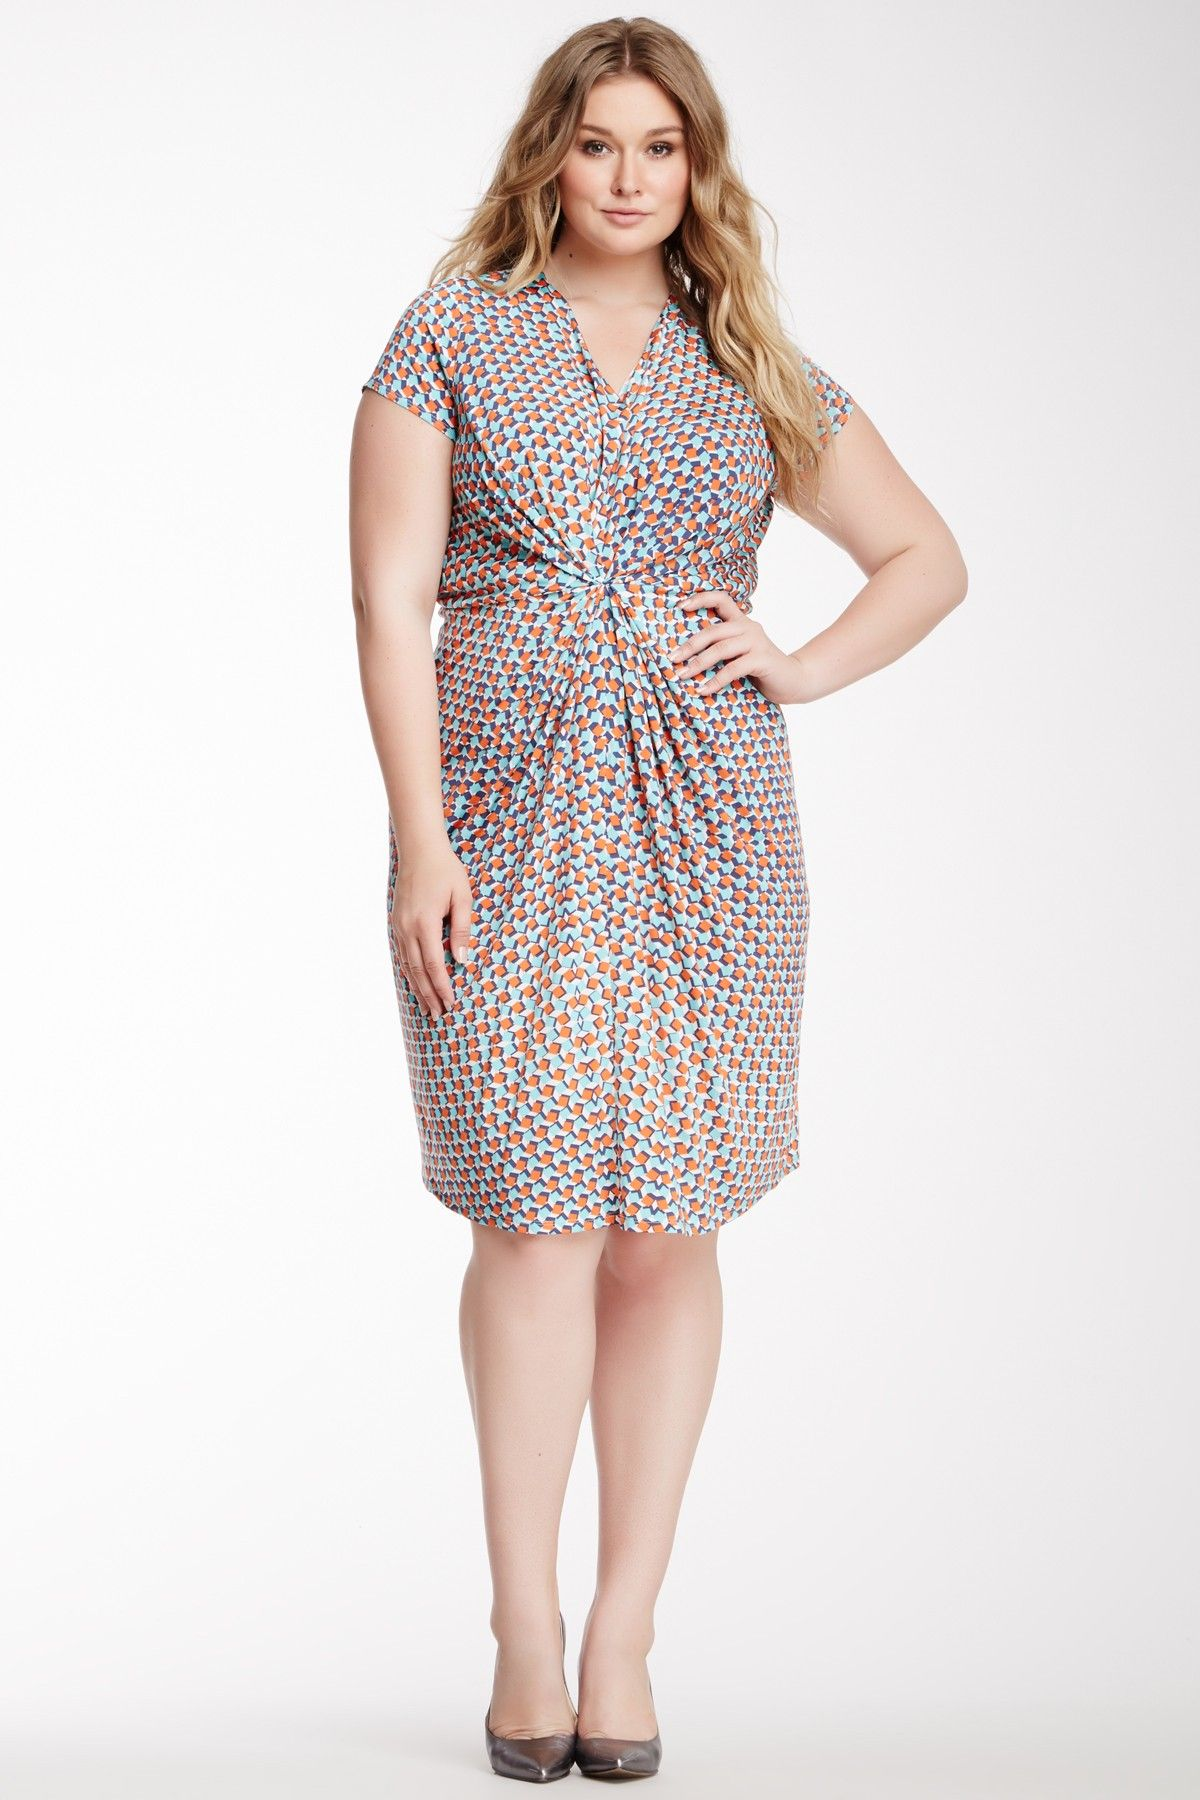 Leota | Short Sleeve Catherine Dress - Plus Size | Frocks | Dresses ...